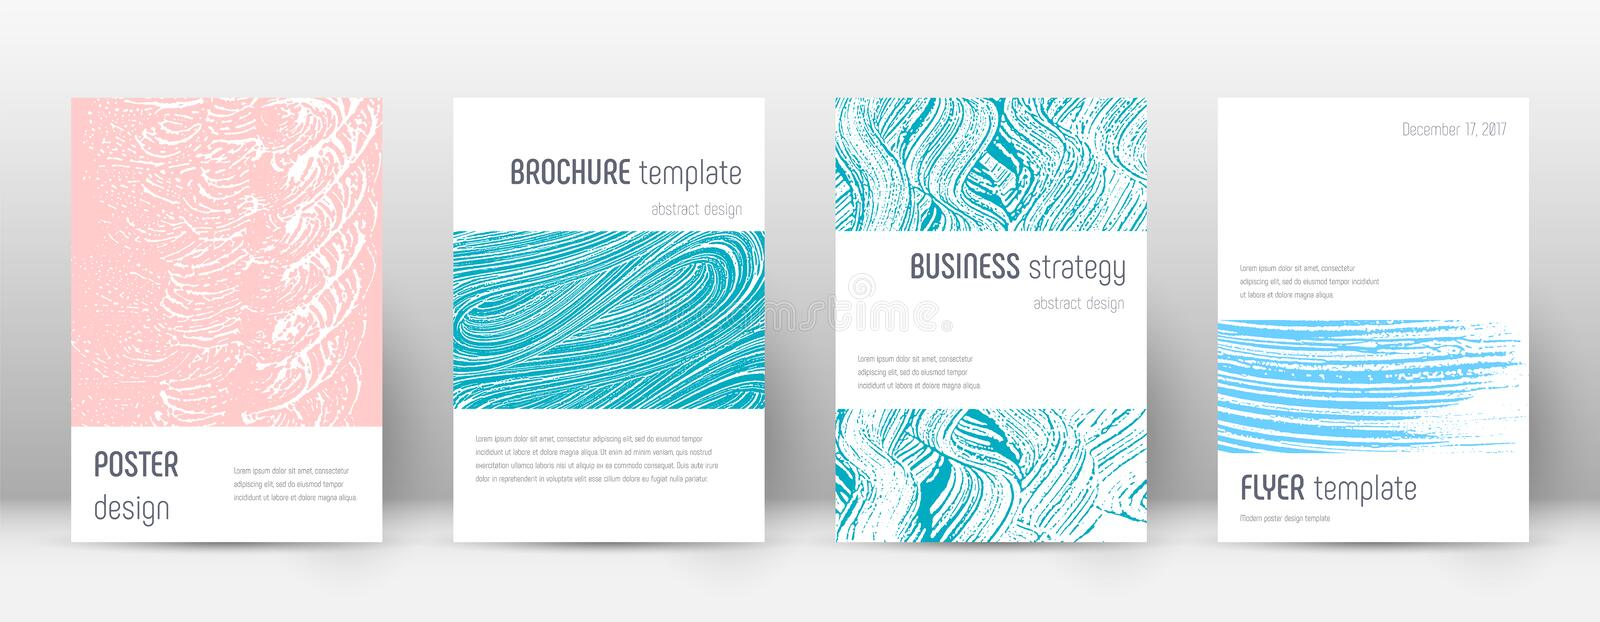 Cover page design template. Minimalistic brochure layout. Brilliant trendy abstract cover page. Pink and blue grunge texture background. Beautiful poster vector illustration